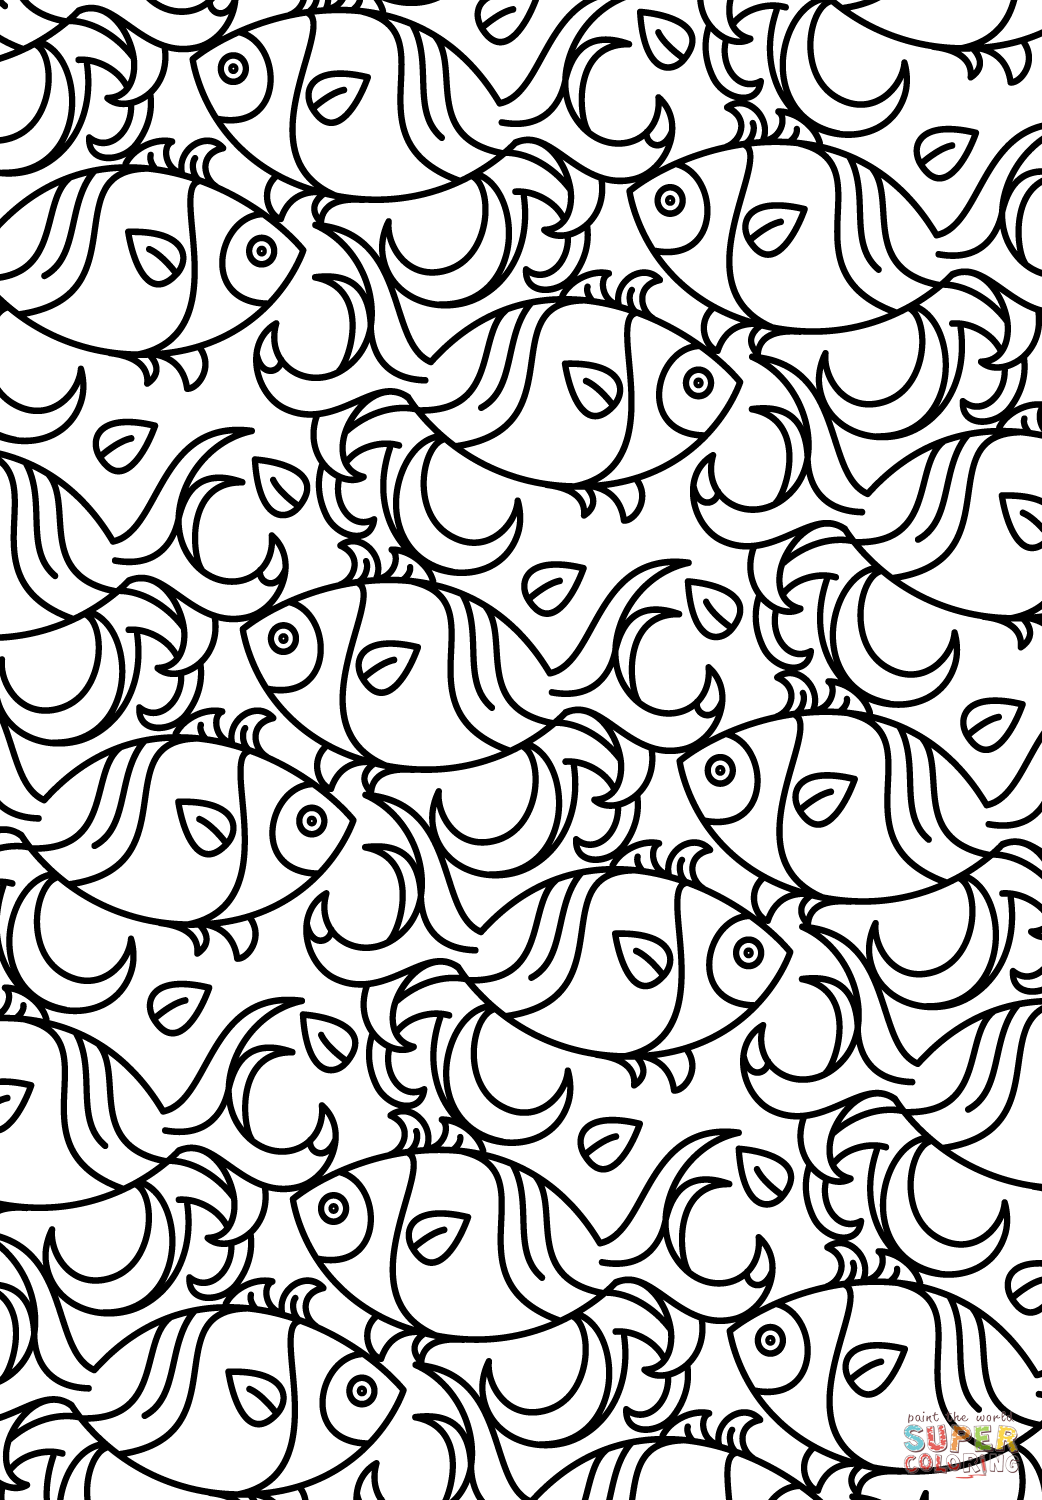 pattern colouring pages to print 16 cool coloring pages of designs images cool geometric pattern colouring to print pages